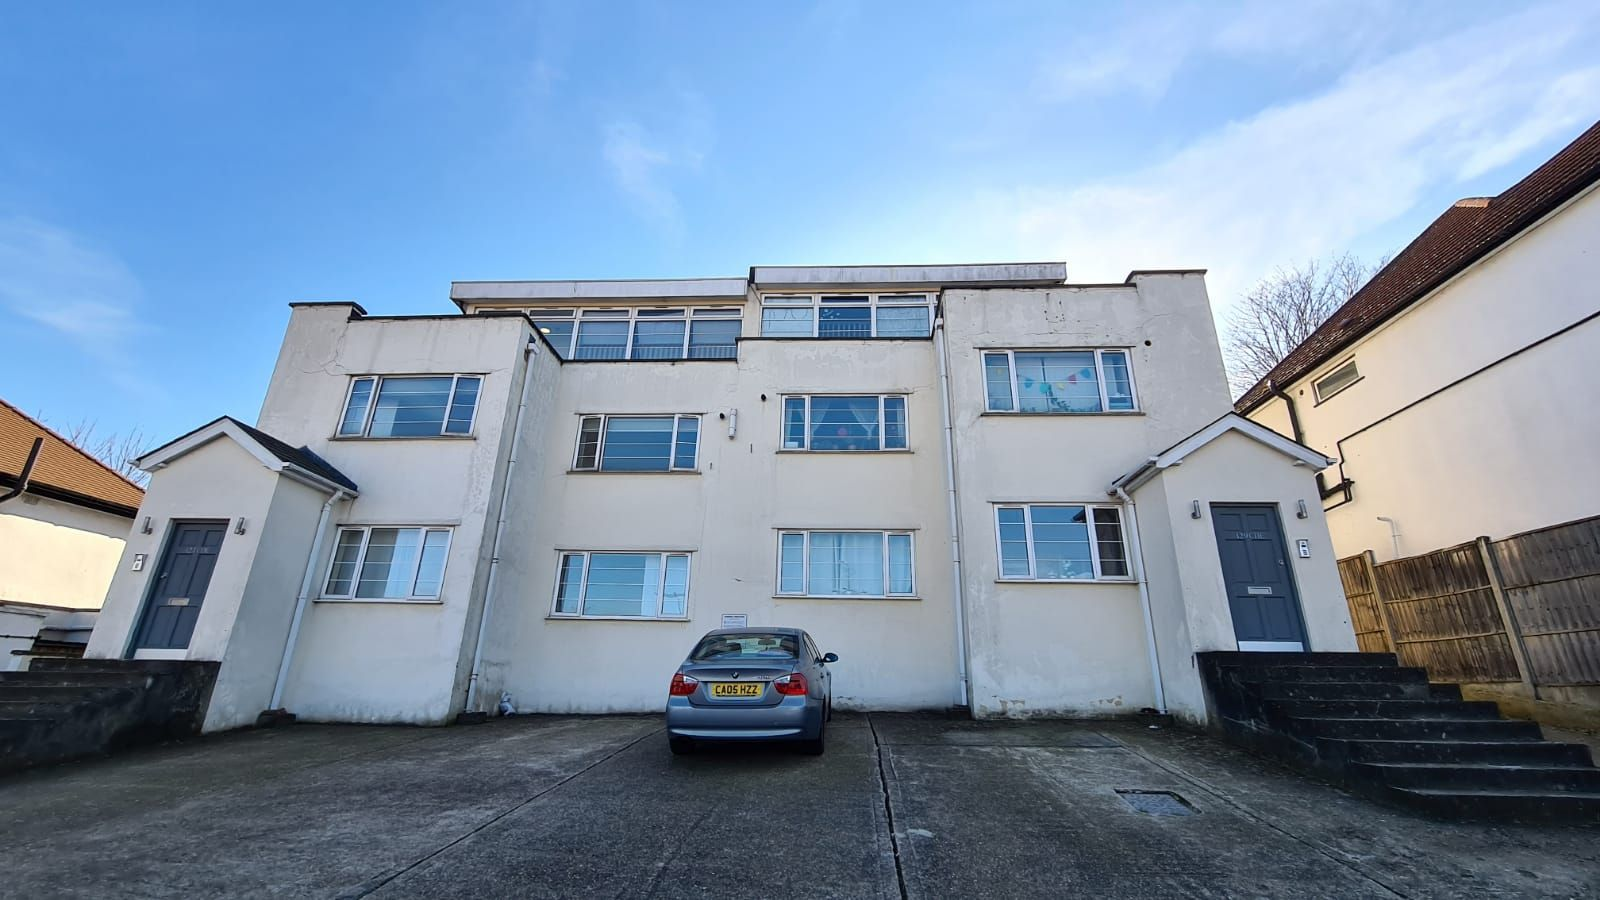 1 bedroom flat flat/apartment To Let in Wembley - Driveway